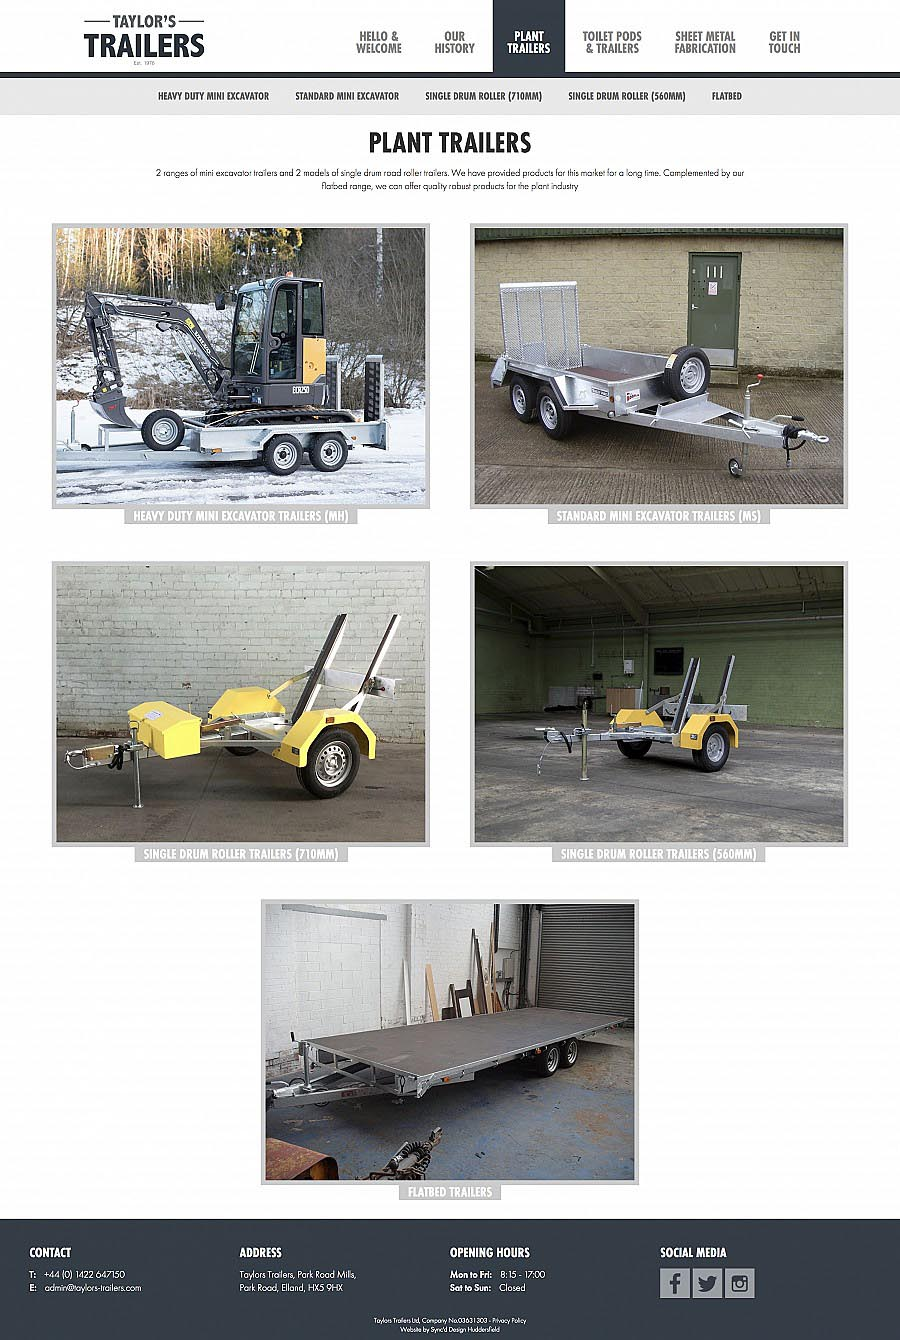 Taylors Trailers Products Page